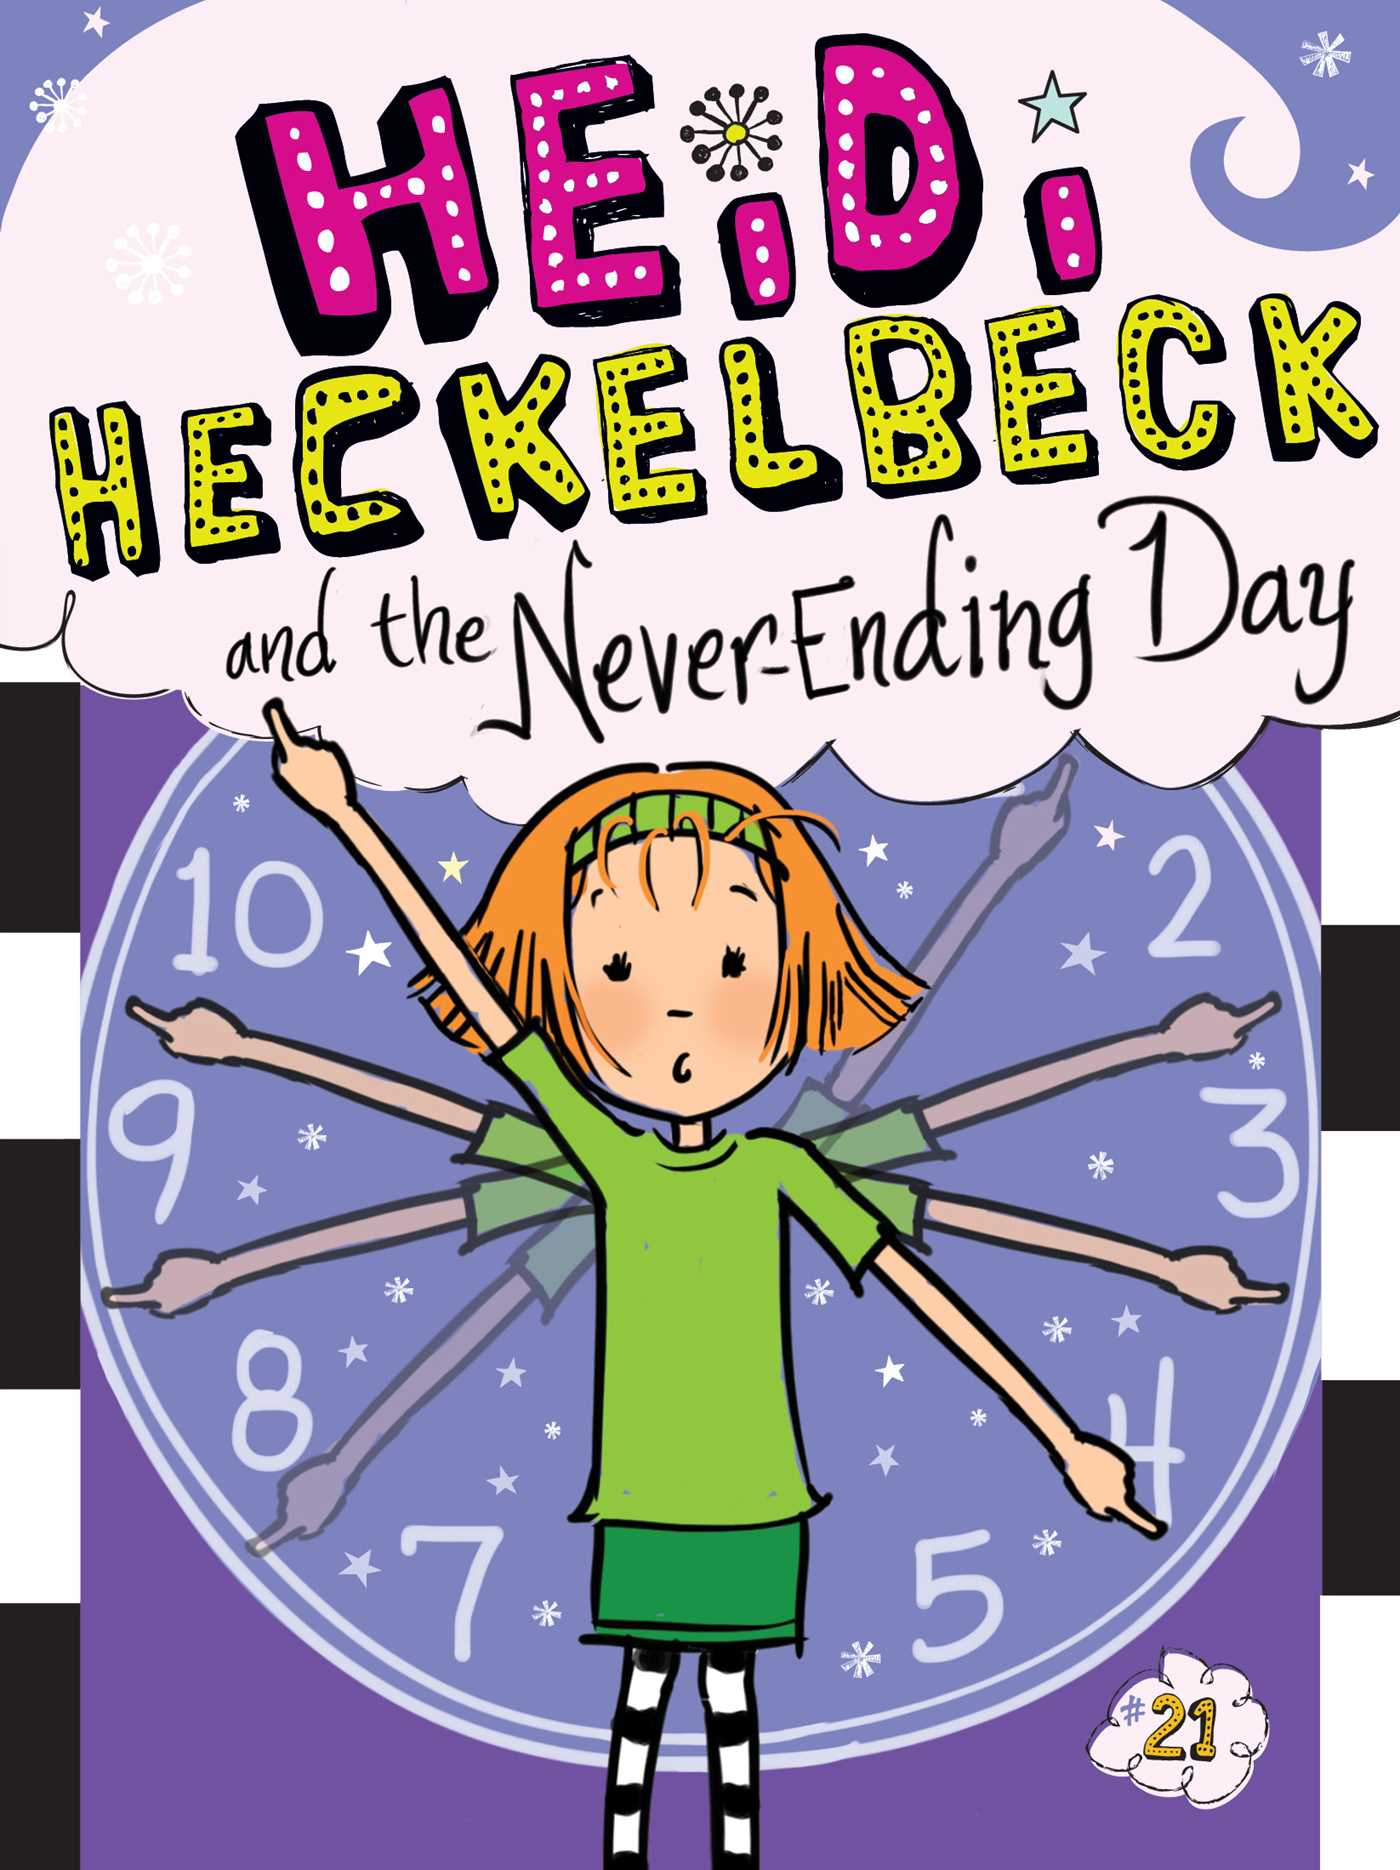 Heidi heckelbeck and the never ending day 9781481495240 hr